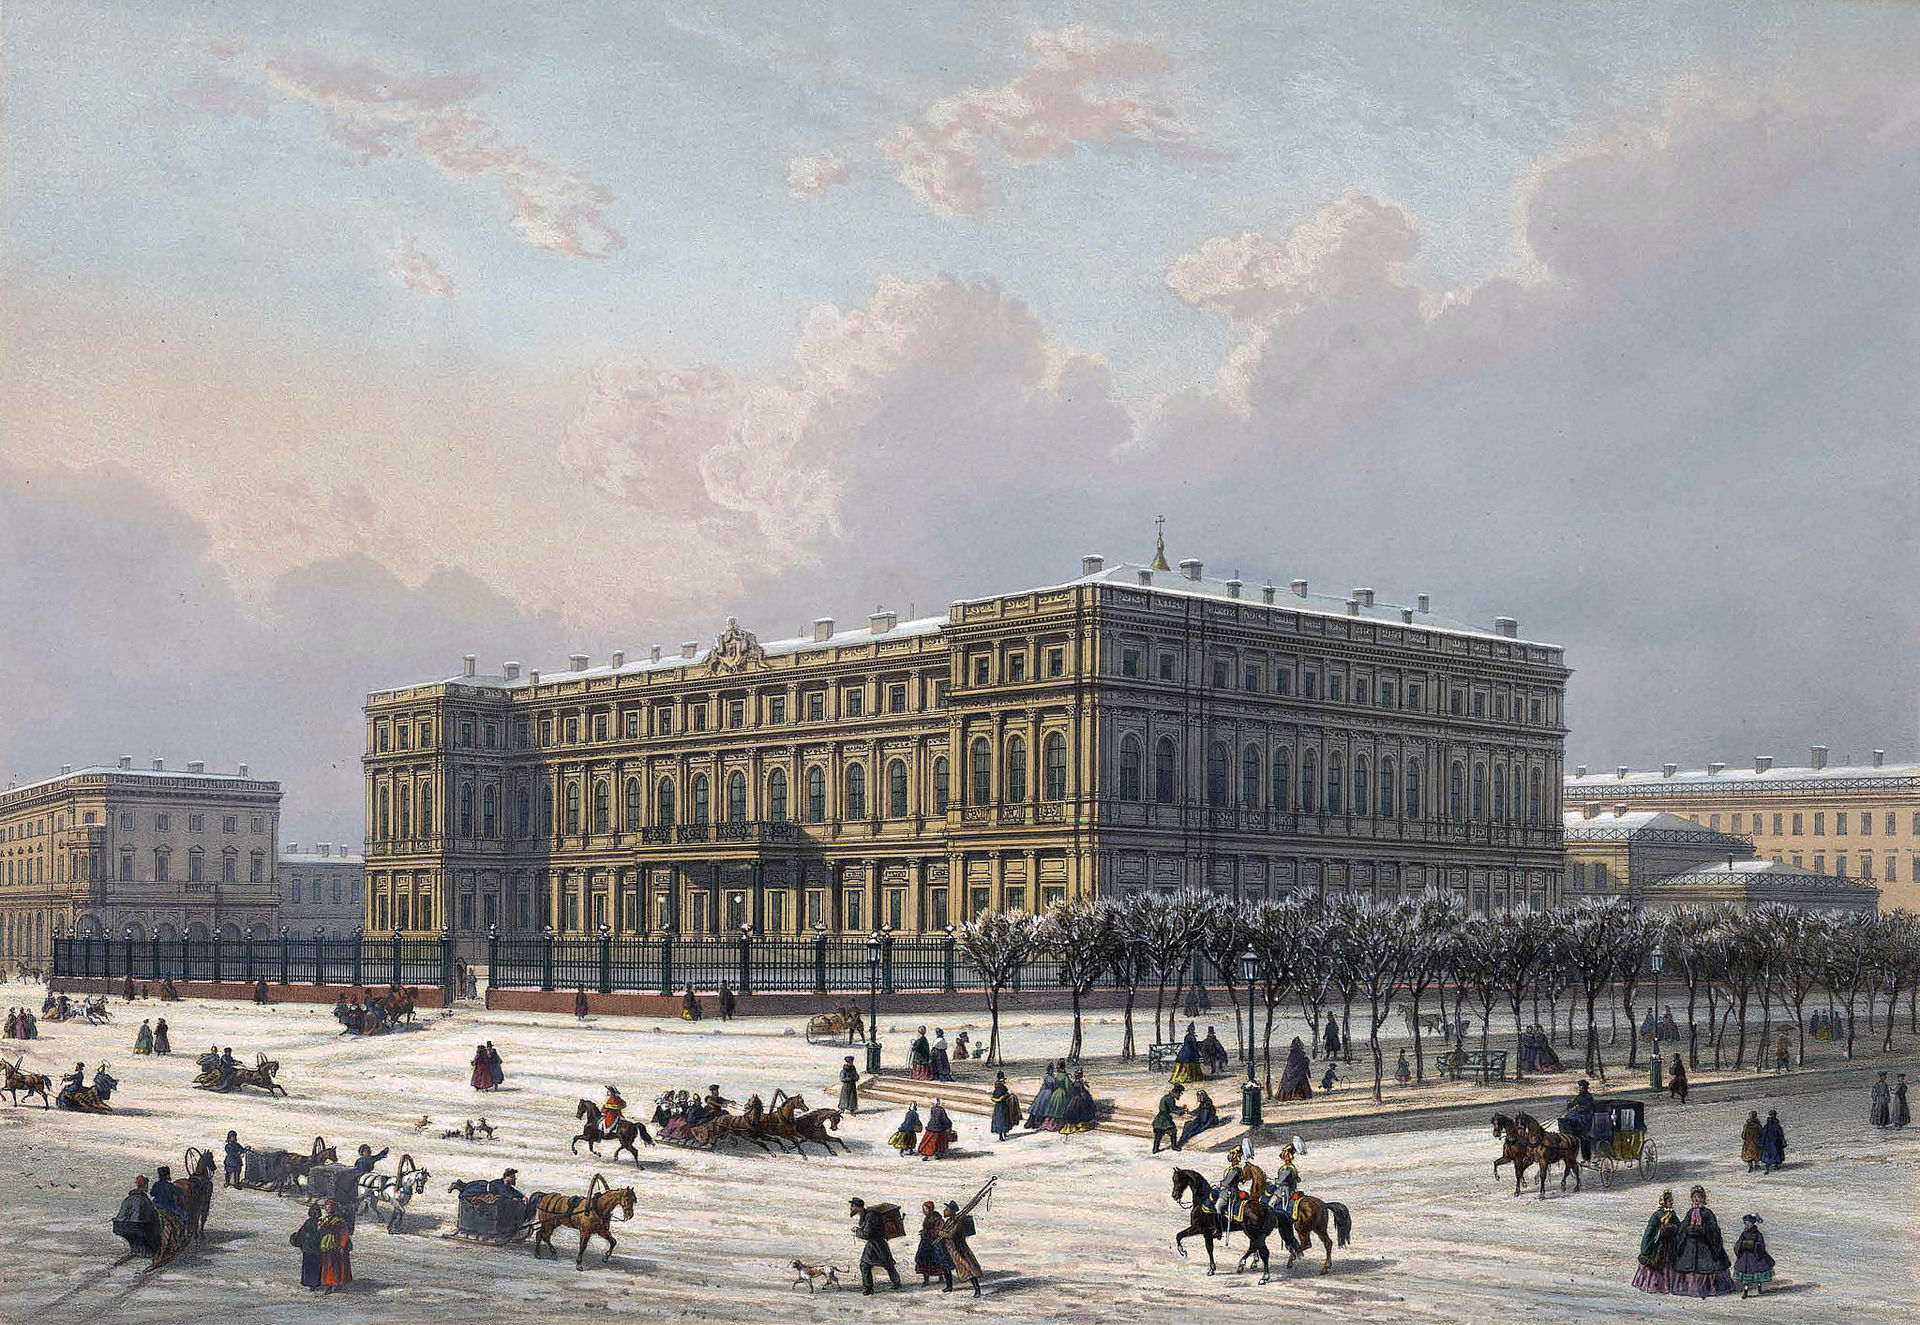 https://upload.wikimedia.org/wikipedia/commons/thumb/4/42/Nicholas_Palace_in_St._Petersburg_in_the_19th_century.jpg/1920px-Nicholas_Palace_in_St._Petersburg_in_the_19th_century.jpg